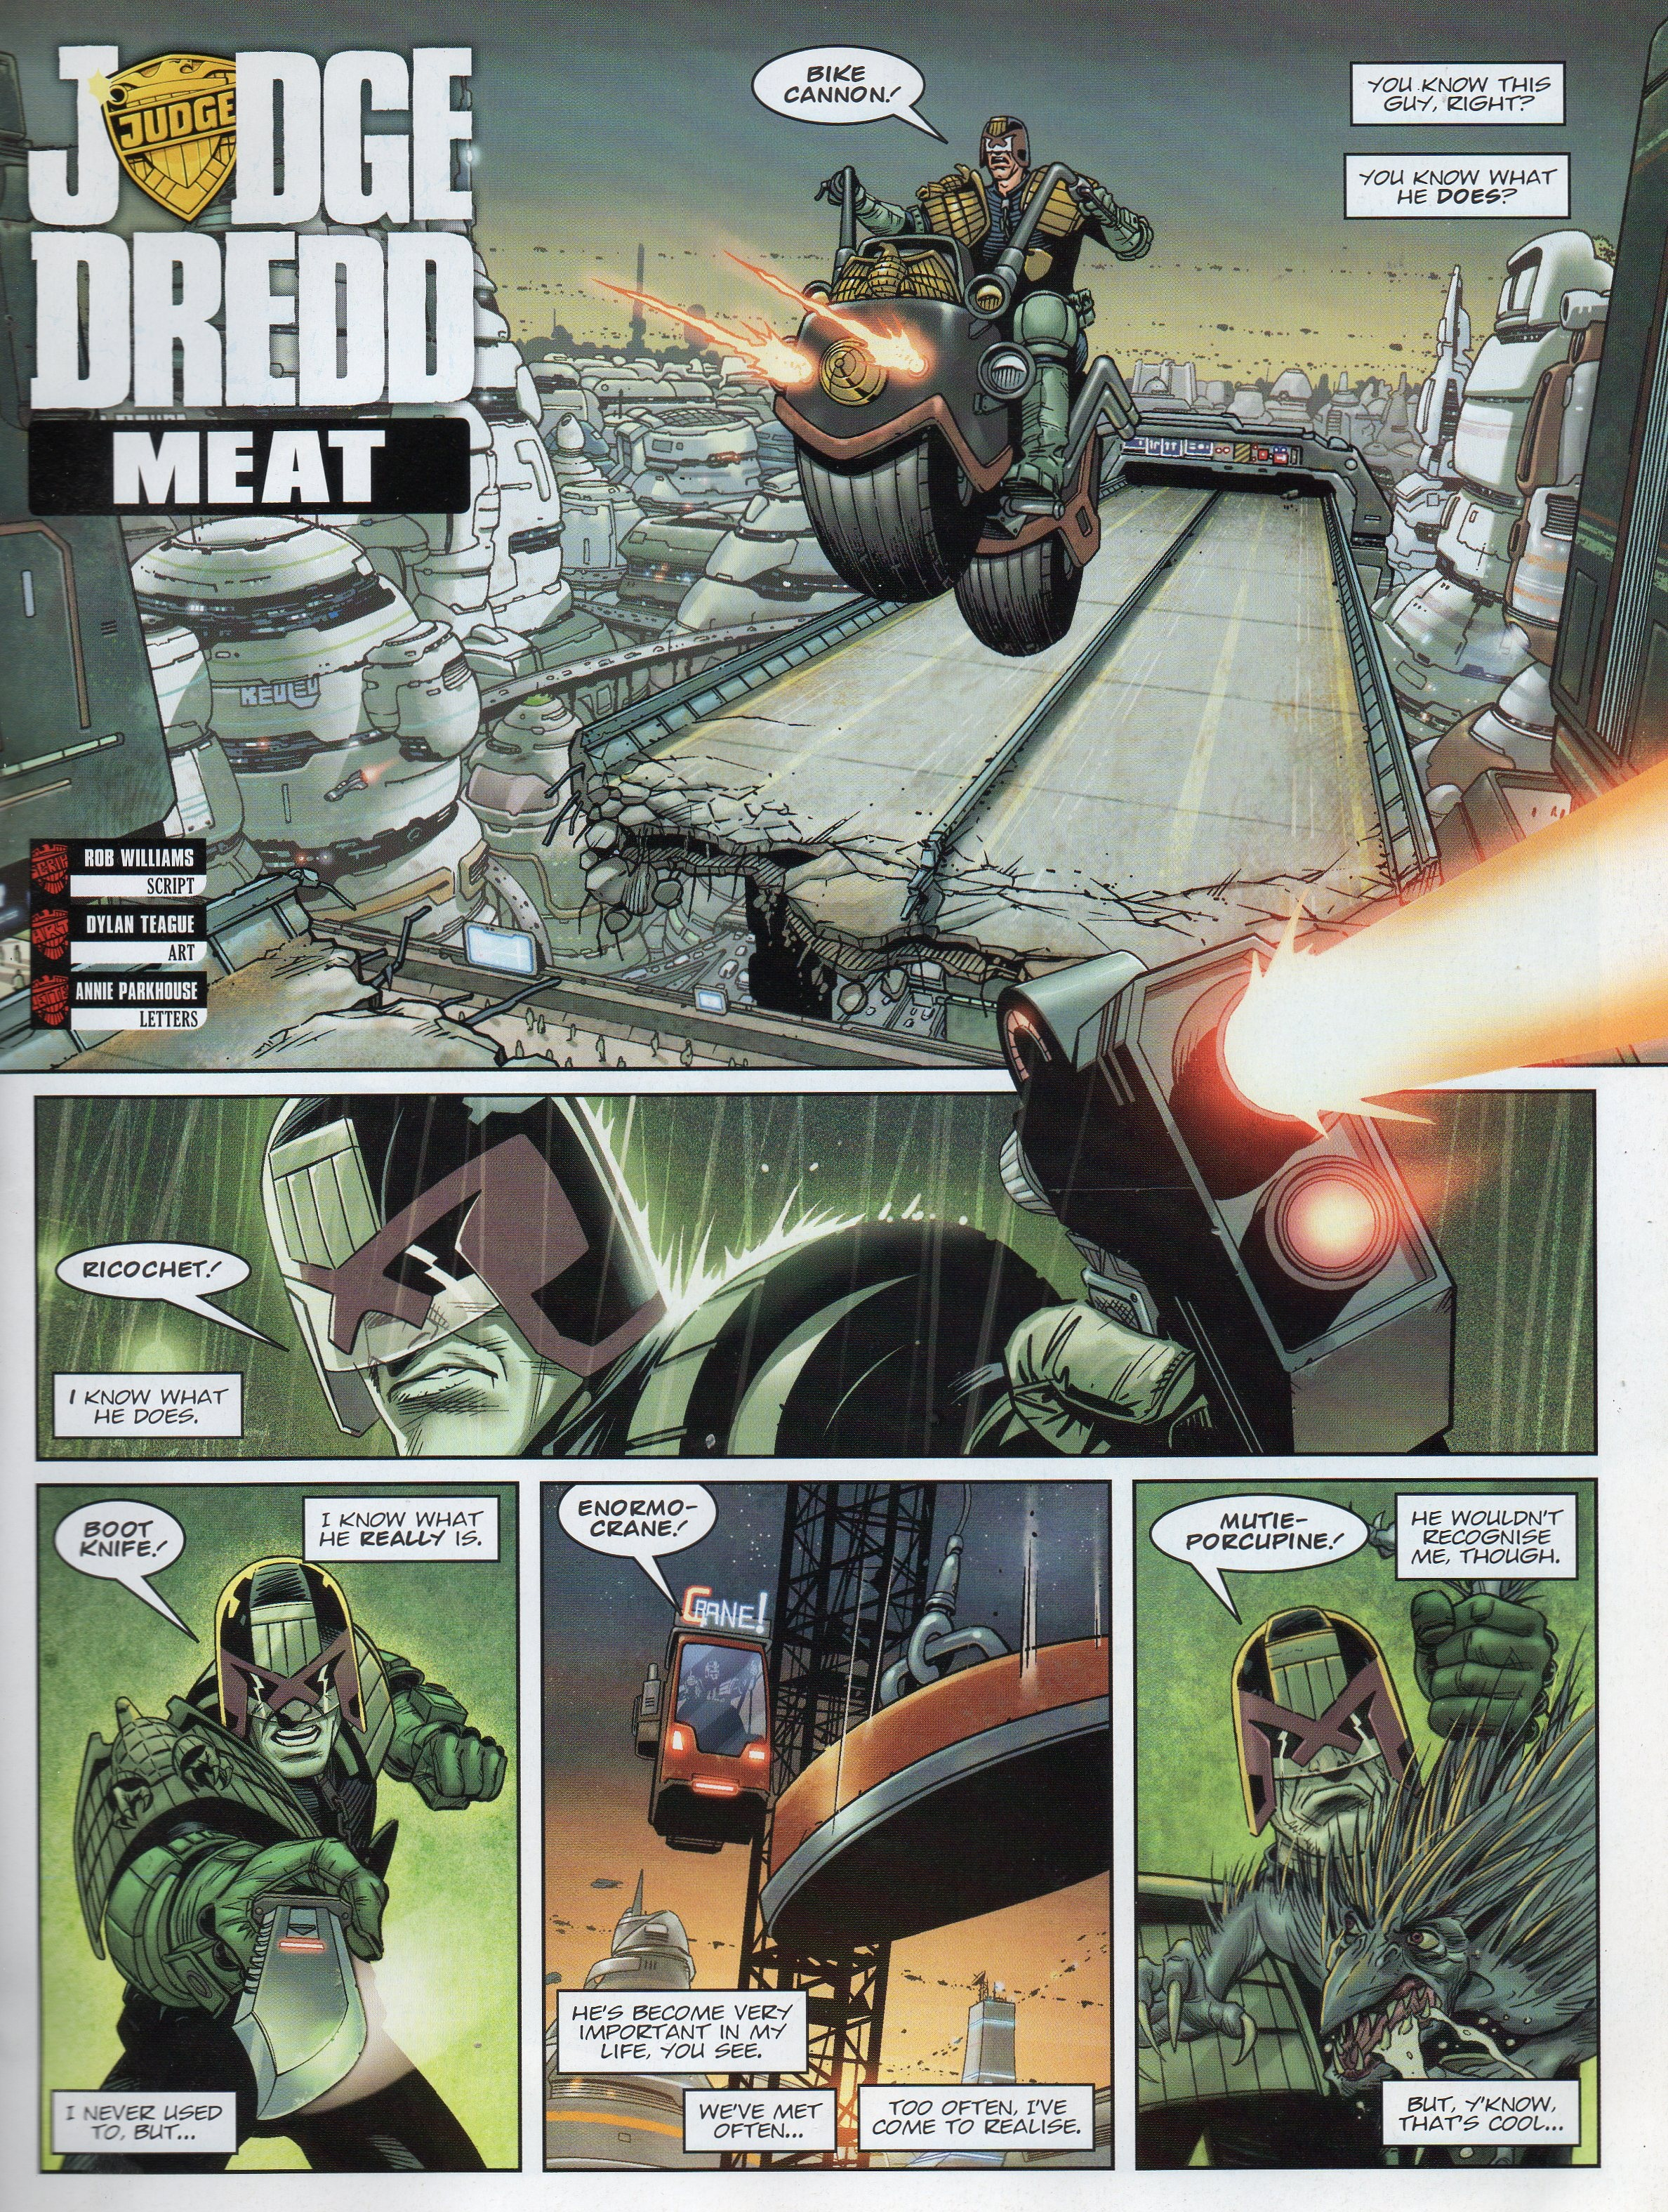 2000AD's Greatest review